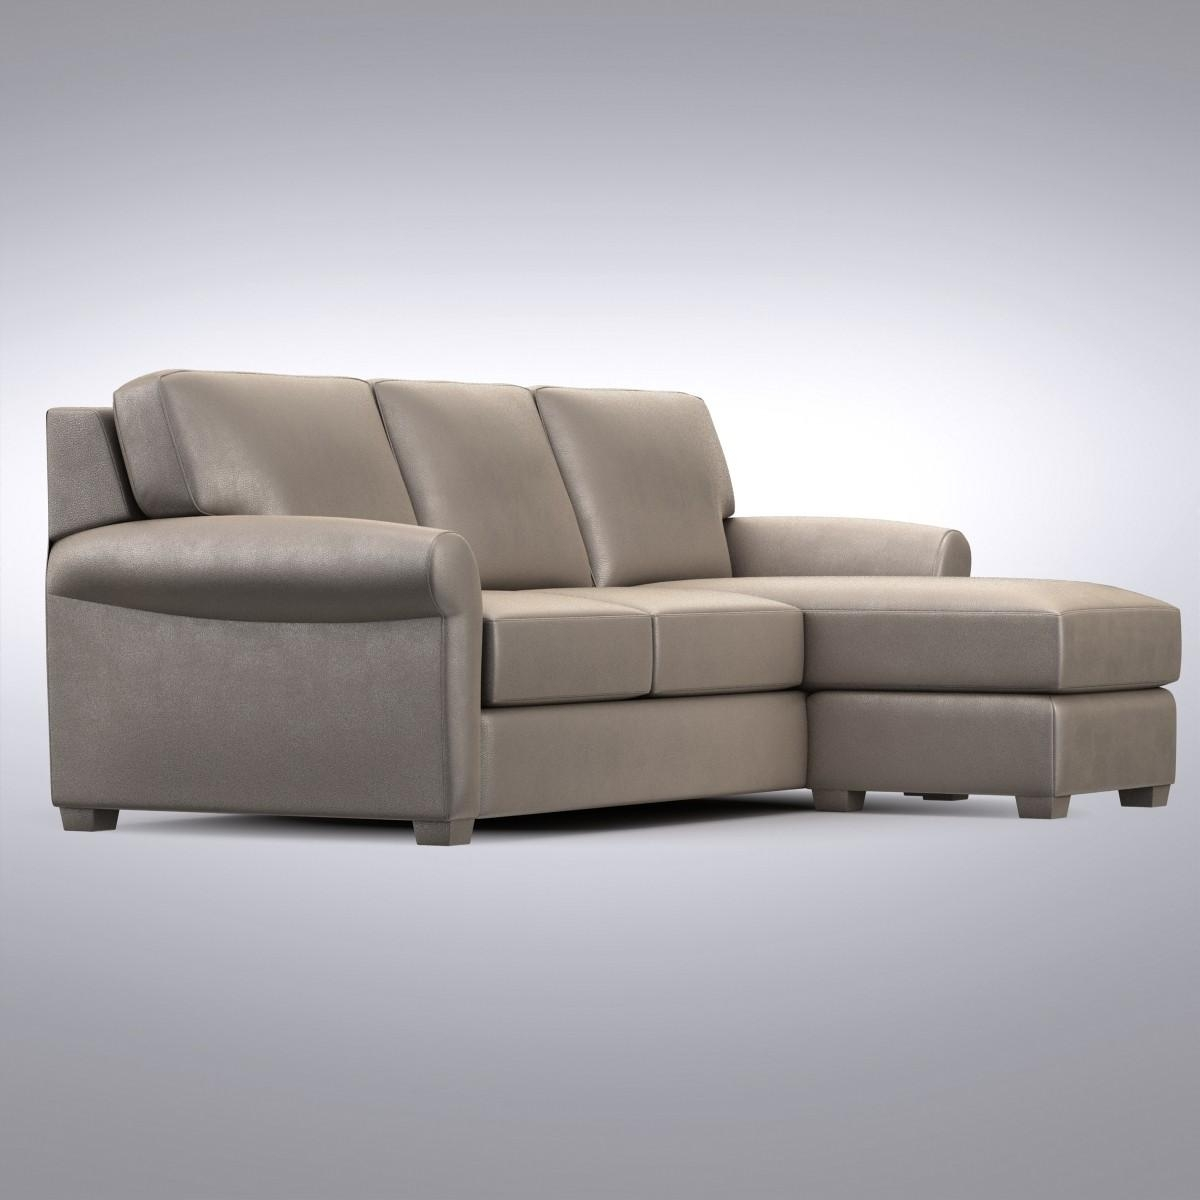 crate and barrel lounge sleeper sofa broyhill reclining 20 inspirations sleepers ideas